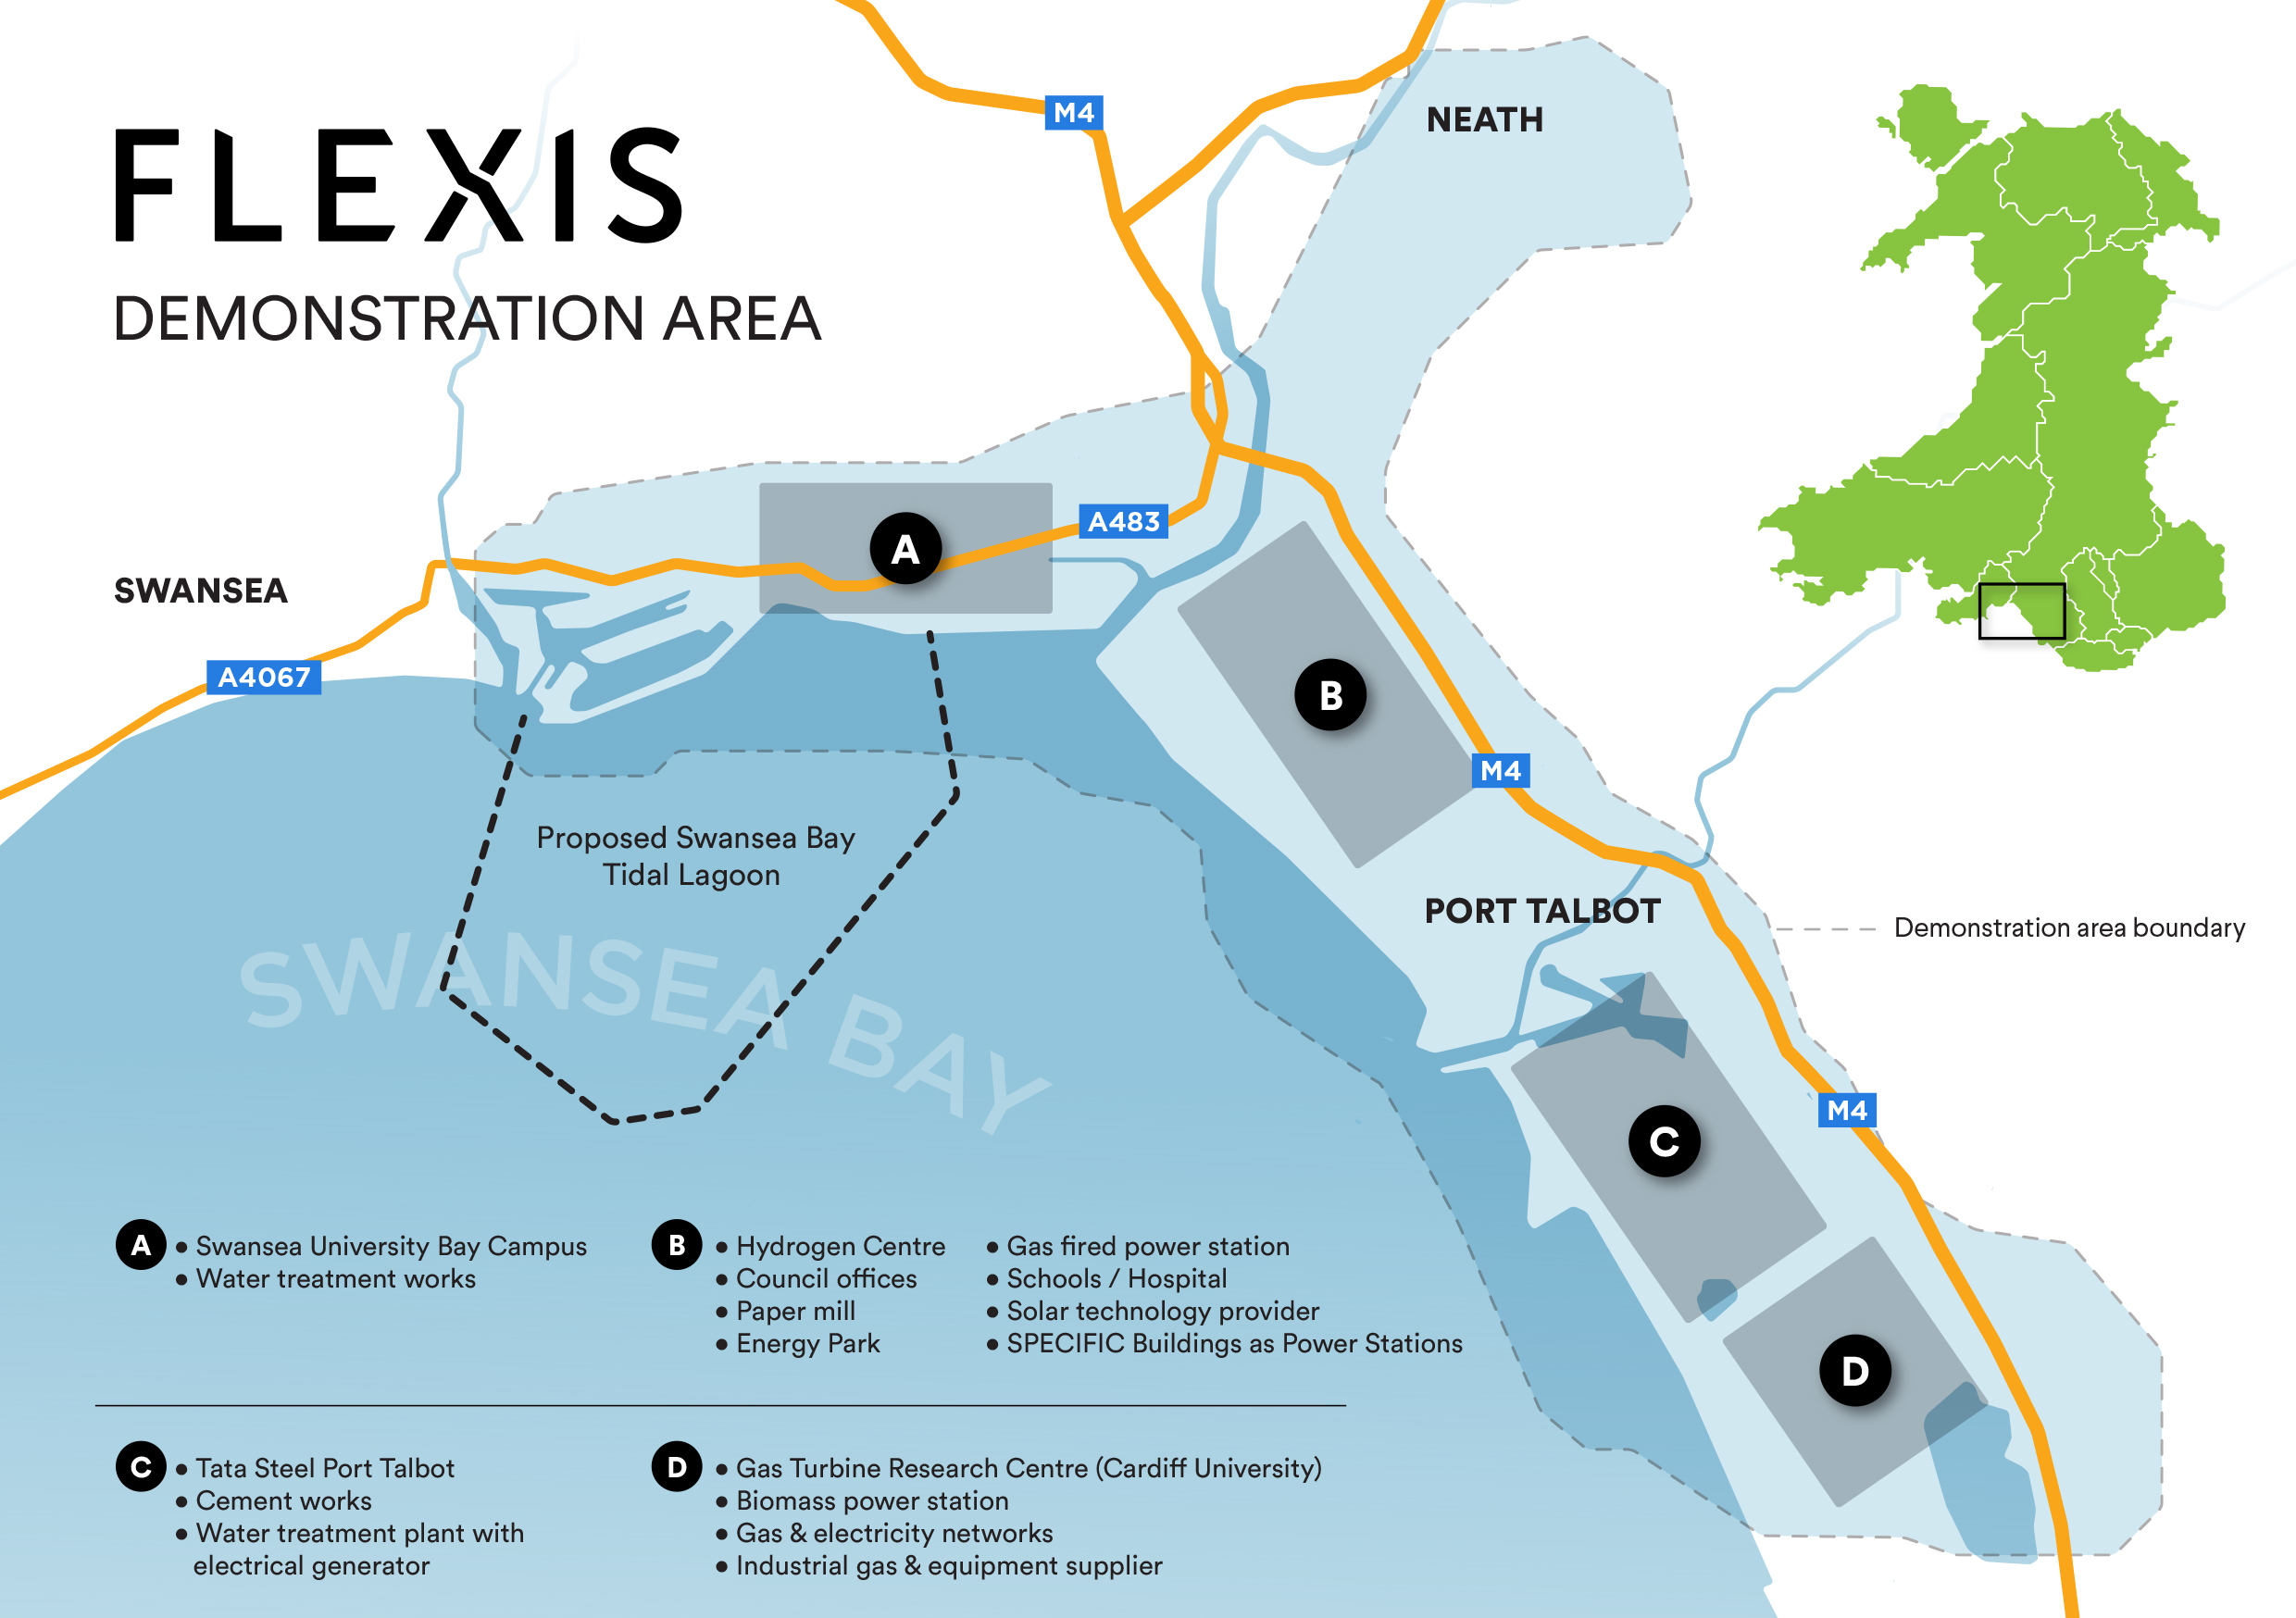 FLEXIS' Demonstration Area